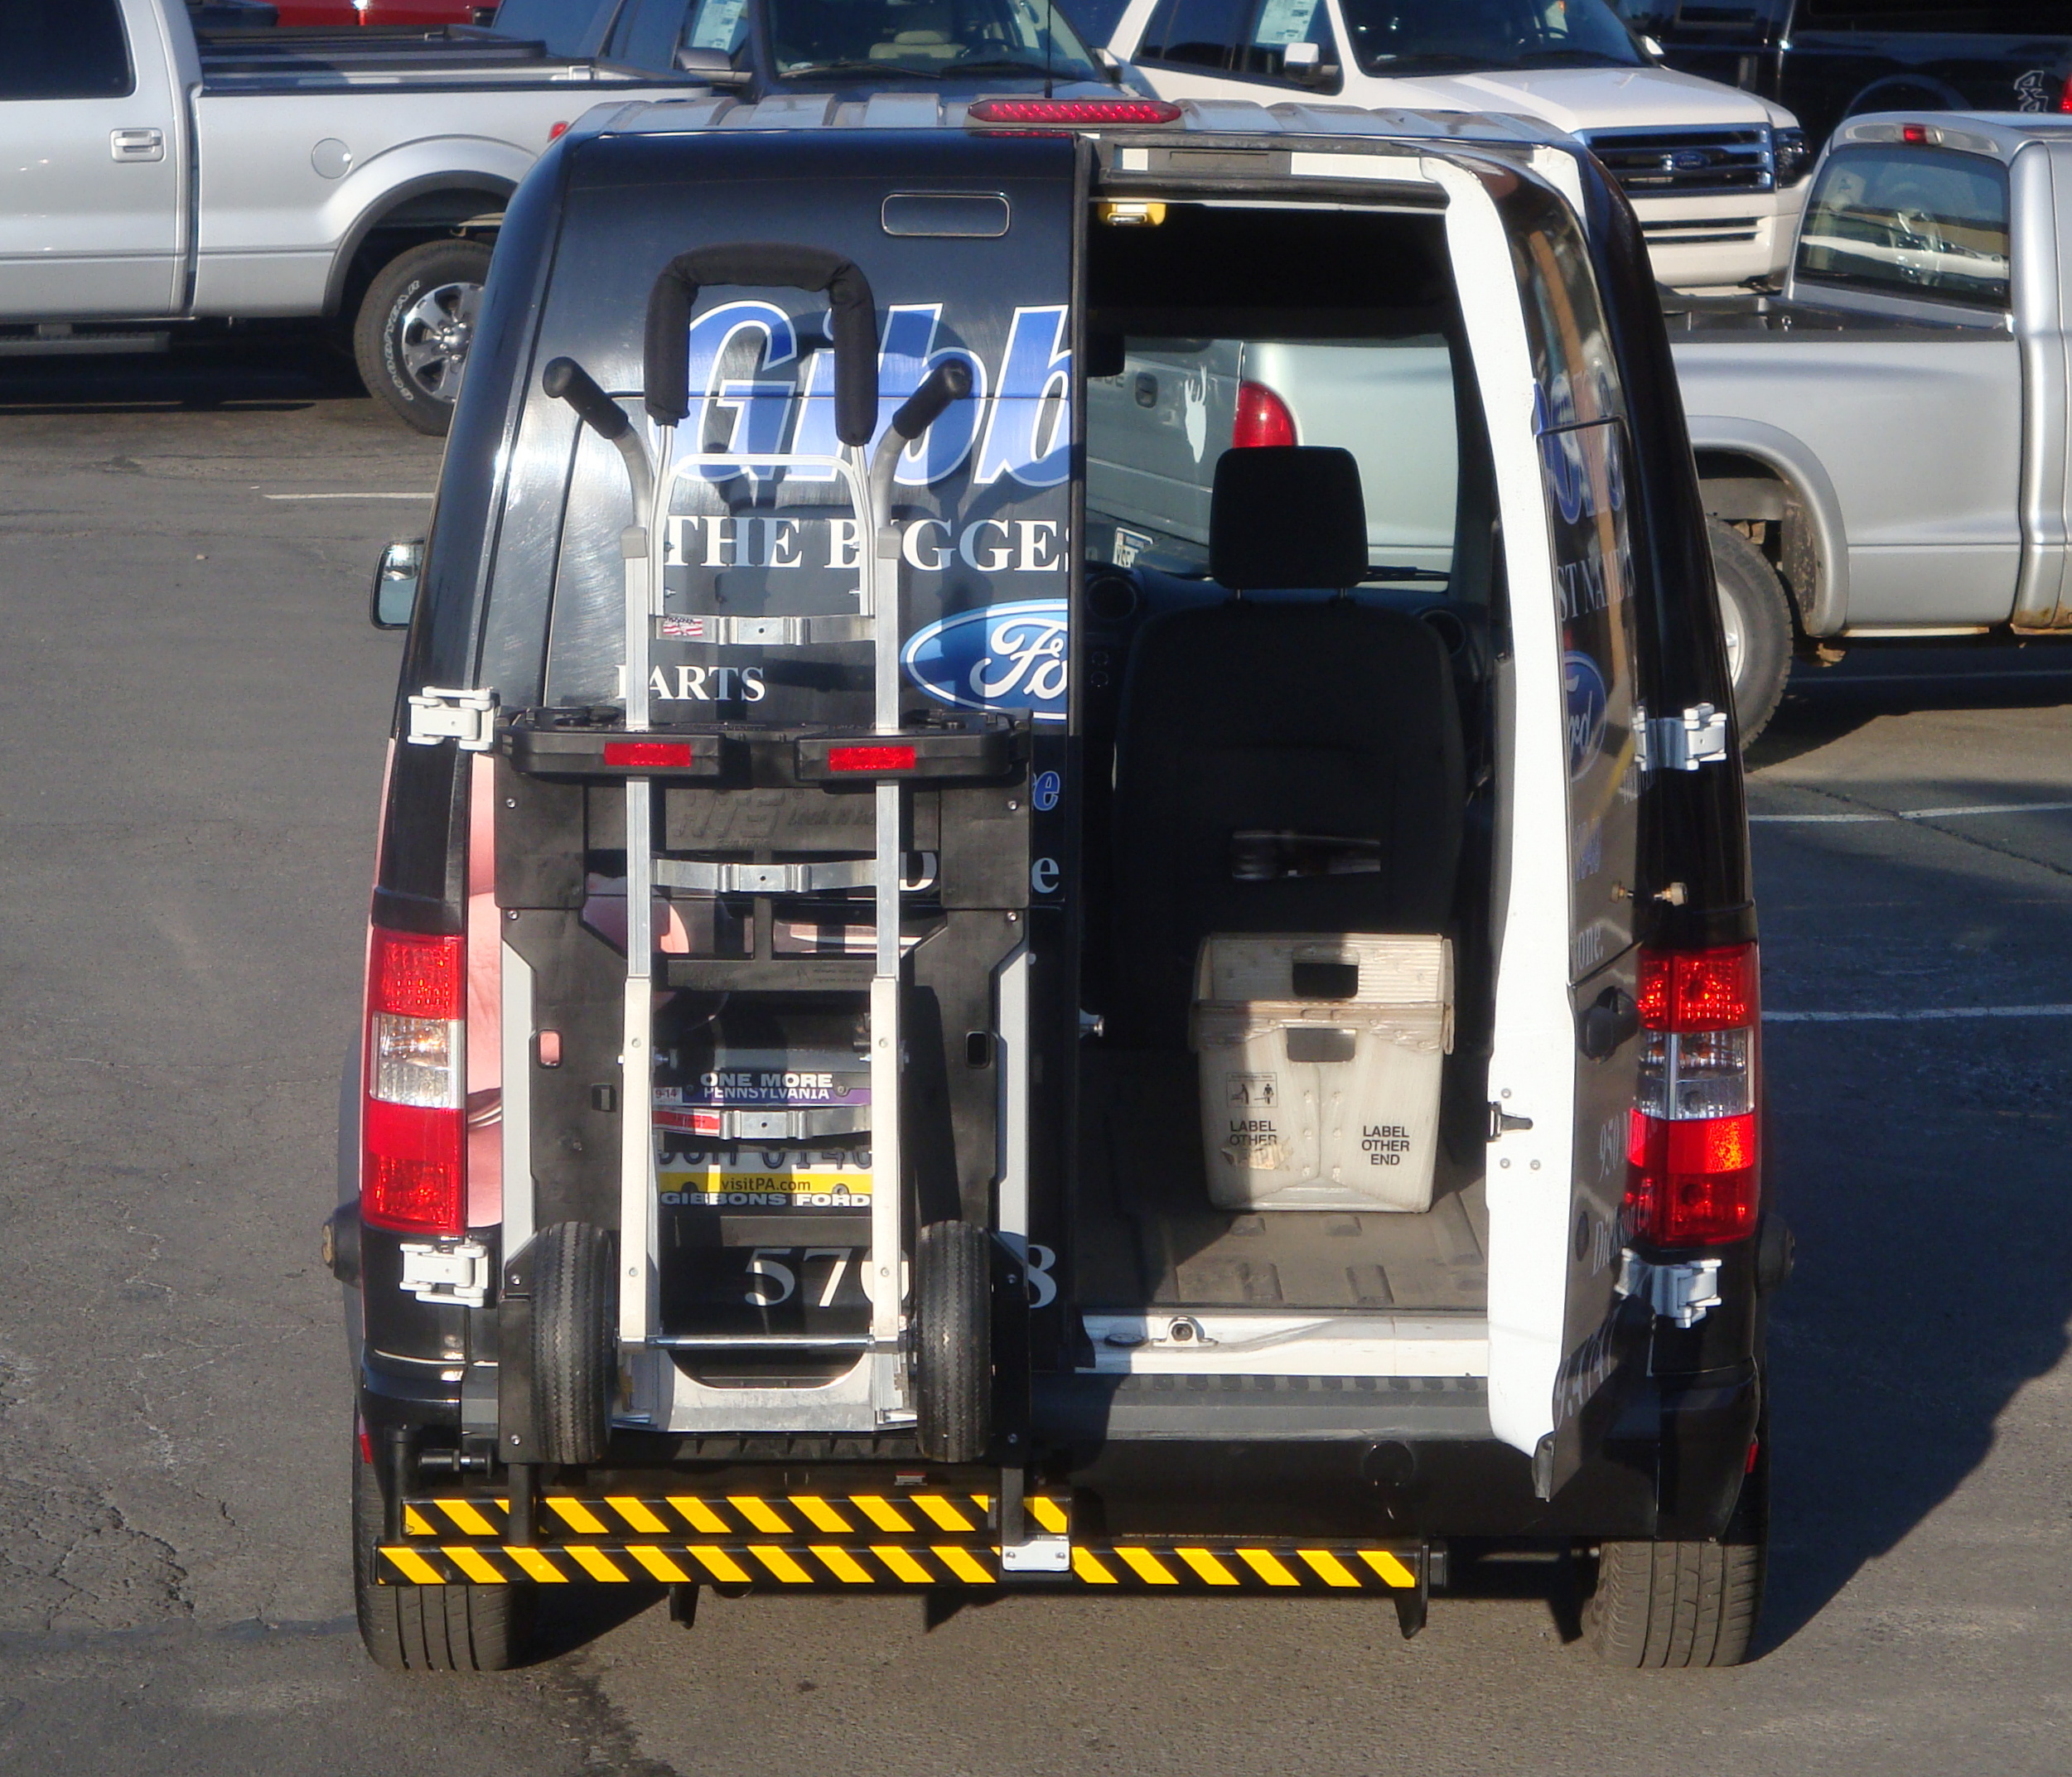 Filegibbons Ford Transit Parts Delivery Van Hand Truck Sentry